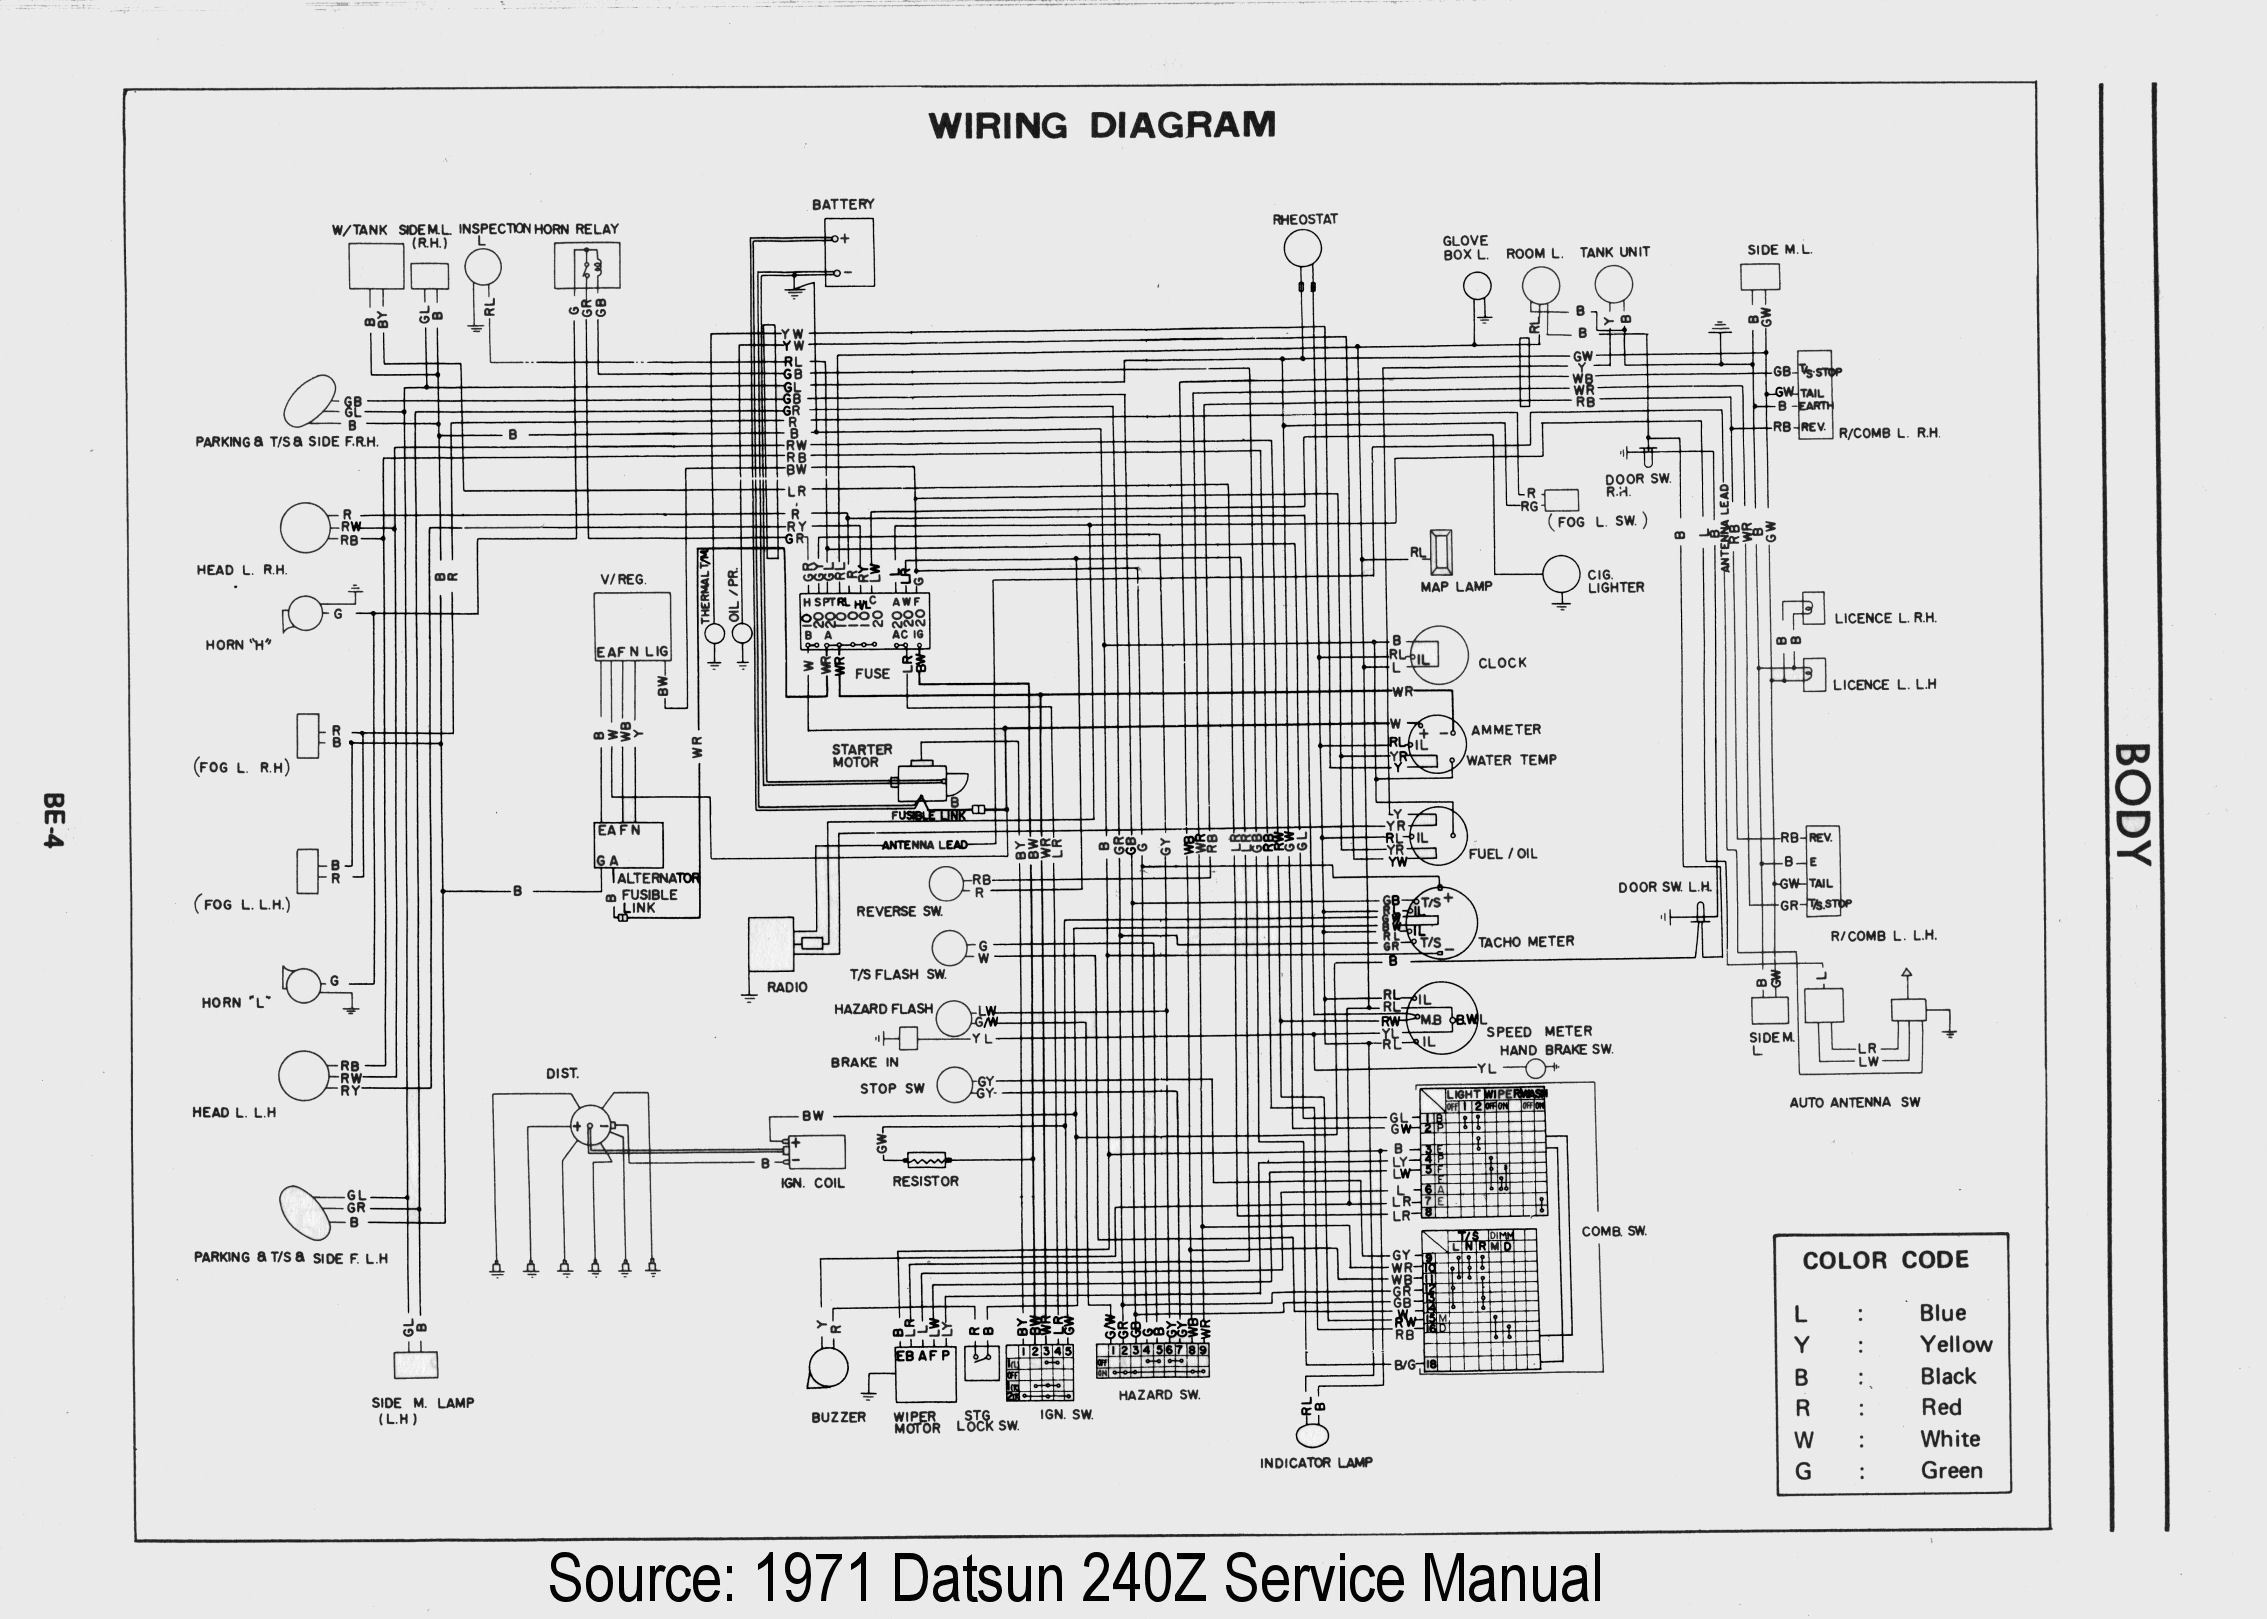 medium resolution of generic wiring diagram wiring diagram detailed crazy cart wiring diagram generic wiring diagram